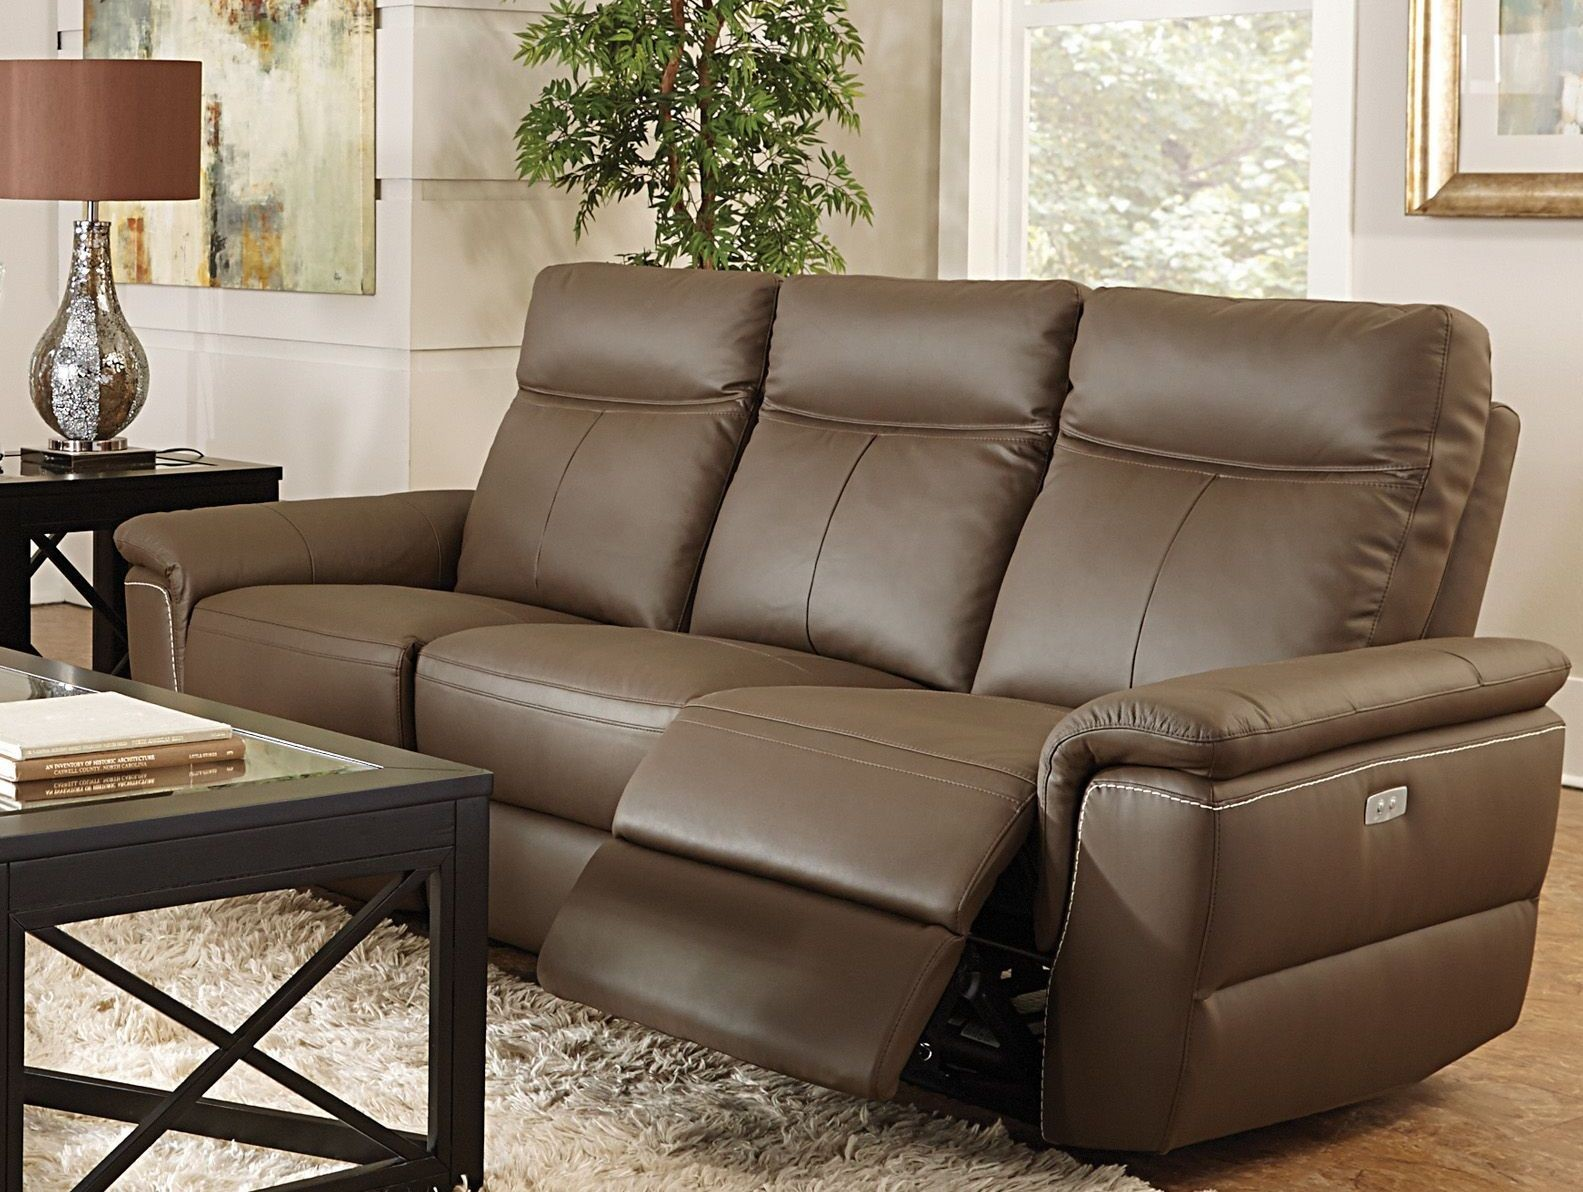 Olympia brown power double reclining living room set from for Double chairs for living room